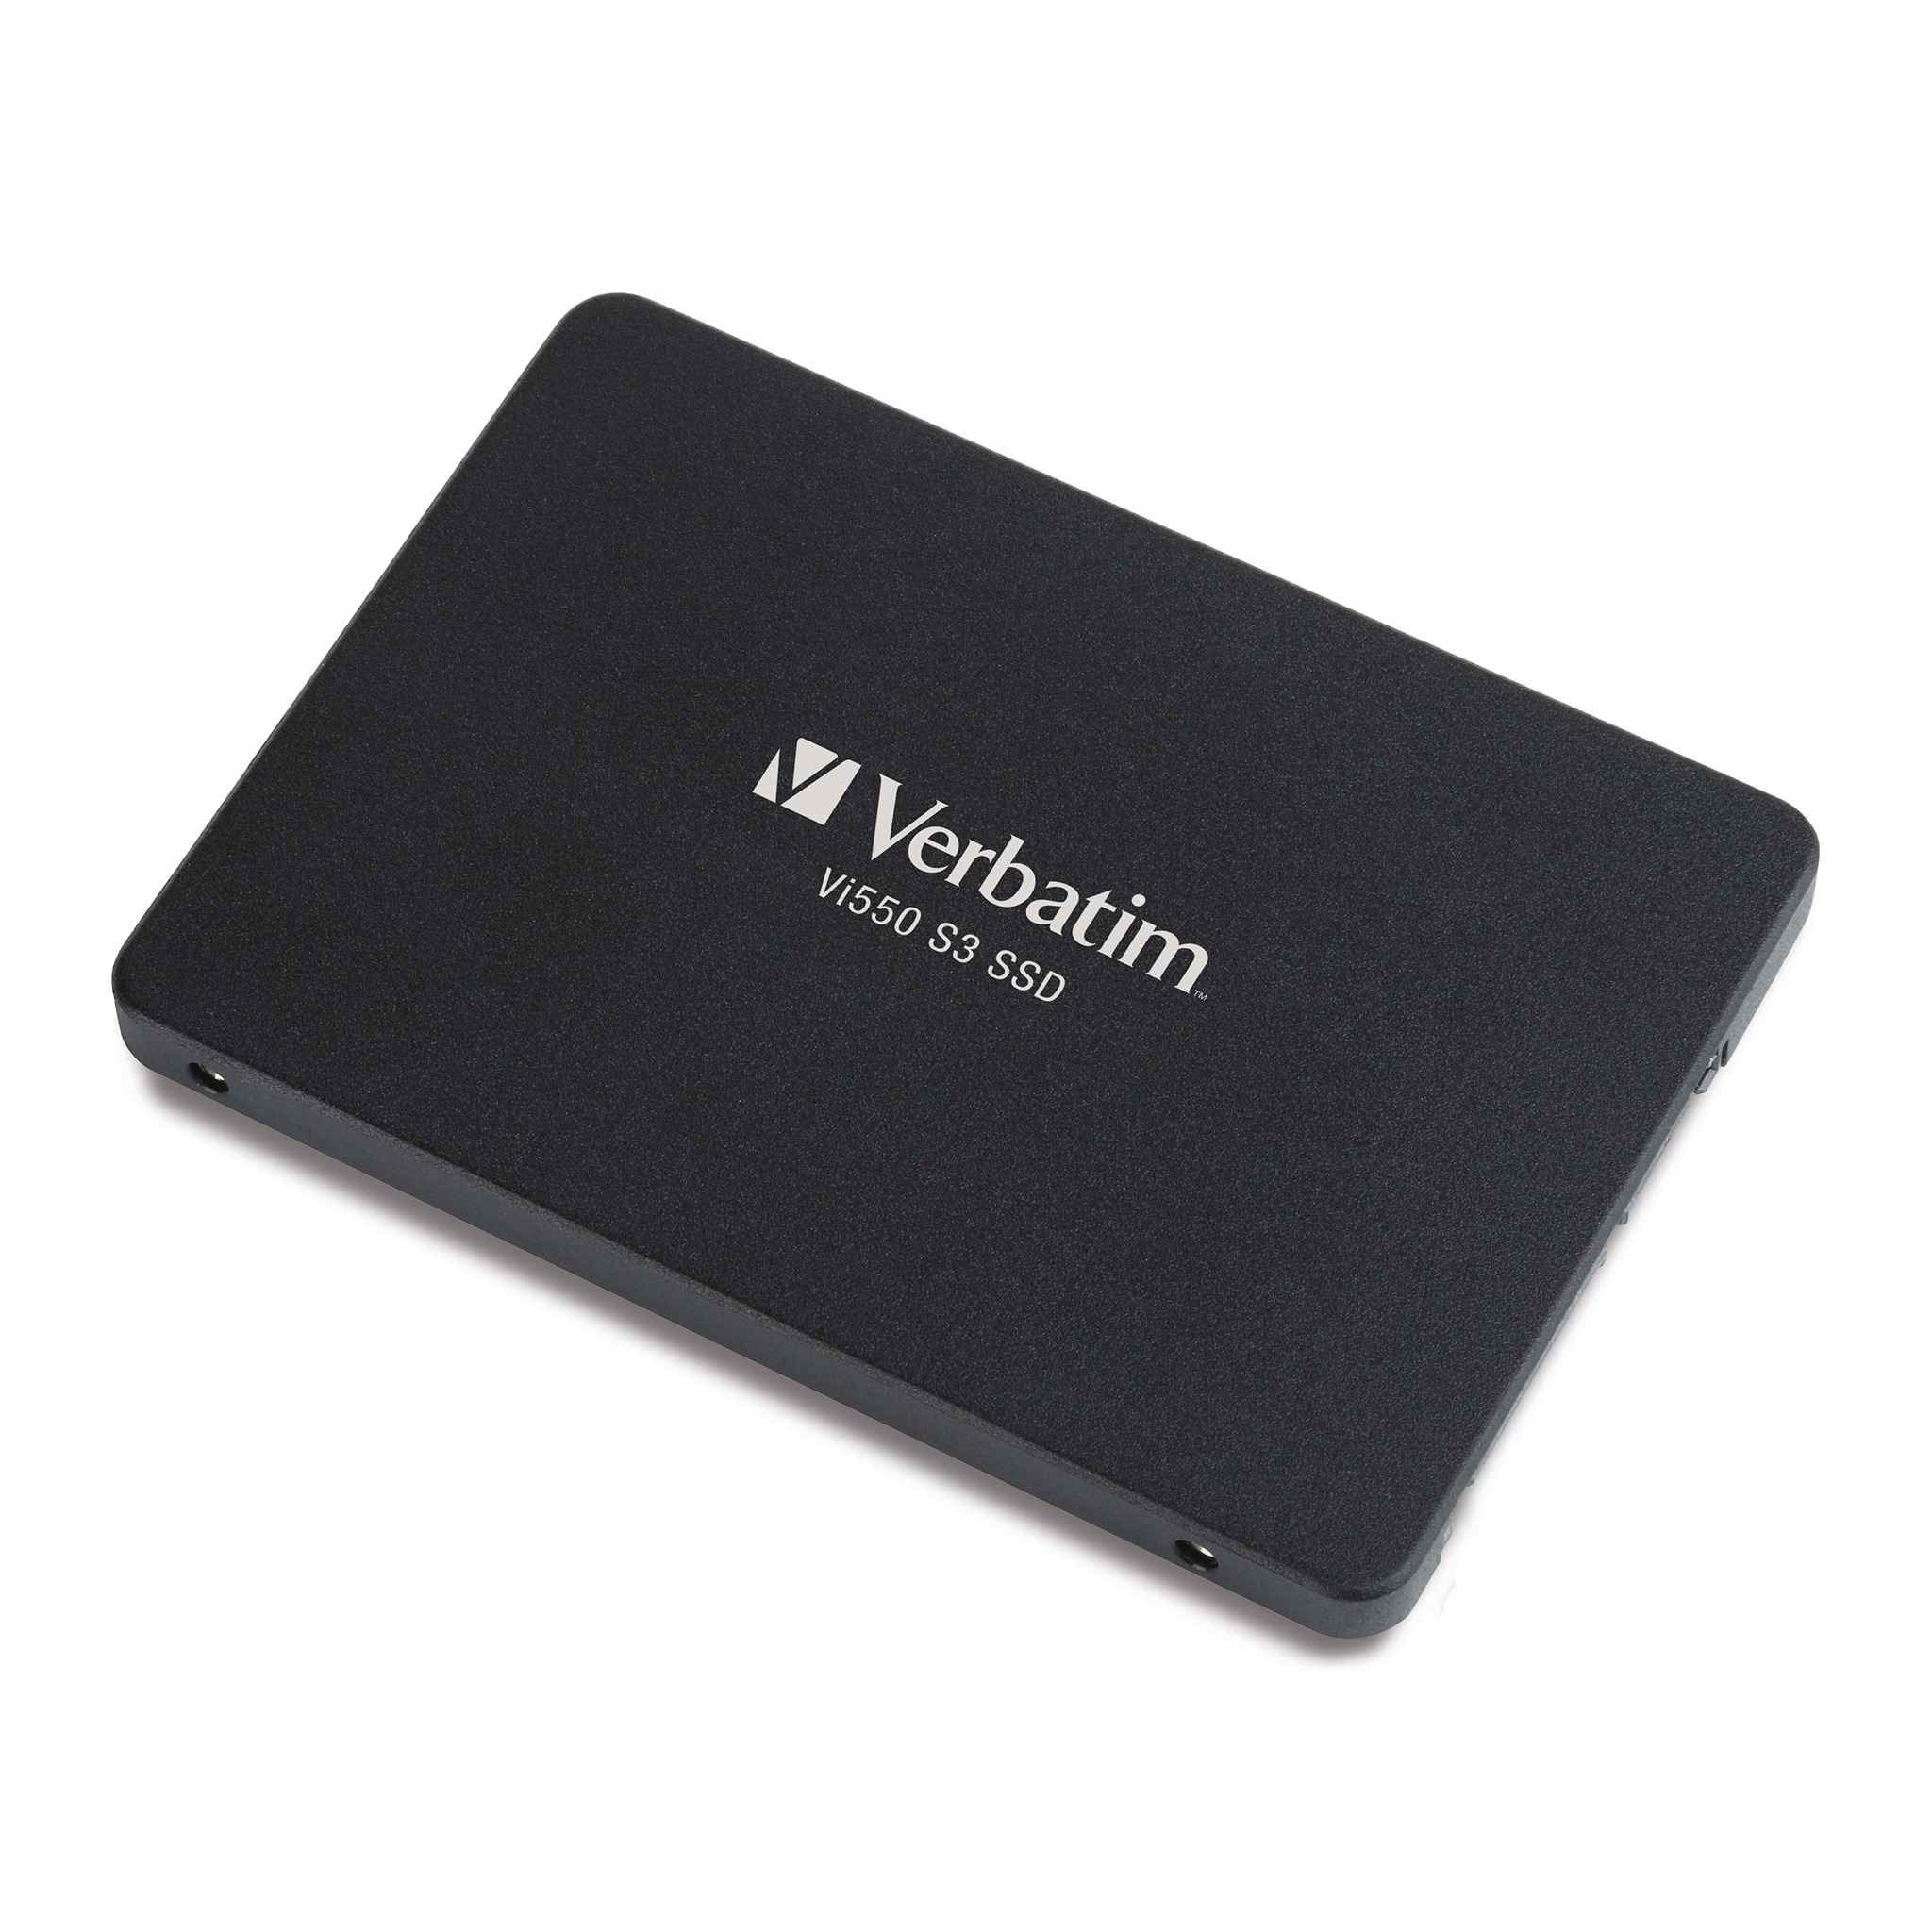 "Verbatim's Vi550 SATA III 2.5"" Internal SSDs are an ideal choice for transforming the performance of any hard drive-based PC. Get ready to experience decreased system boot time, more efficient multi-tasking, and faster system responsiveness.  #TechnologyYouCanTrust"